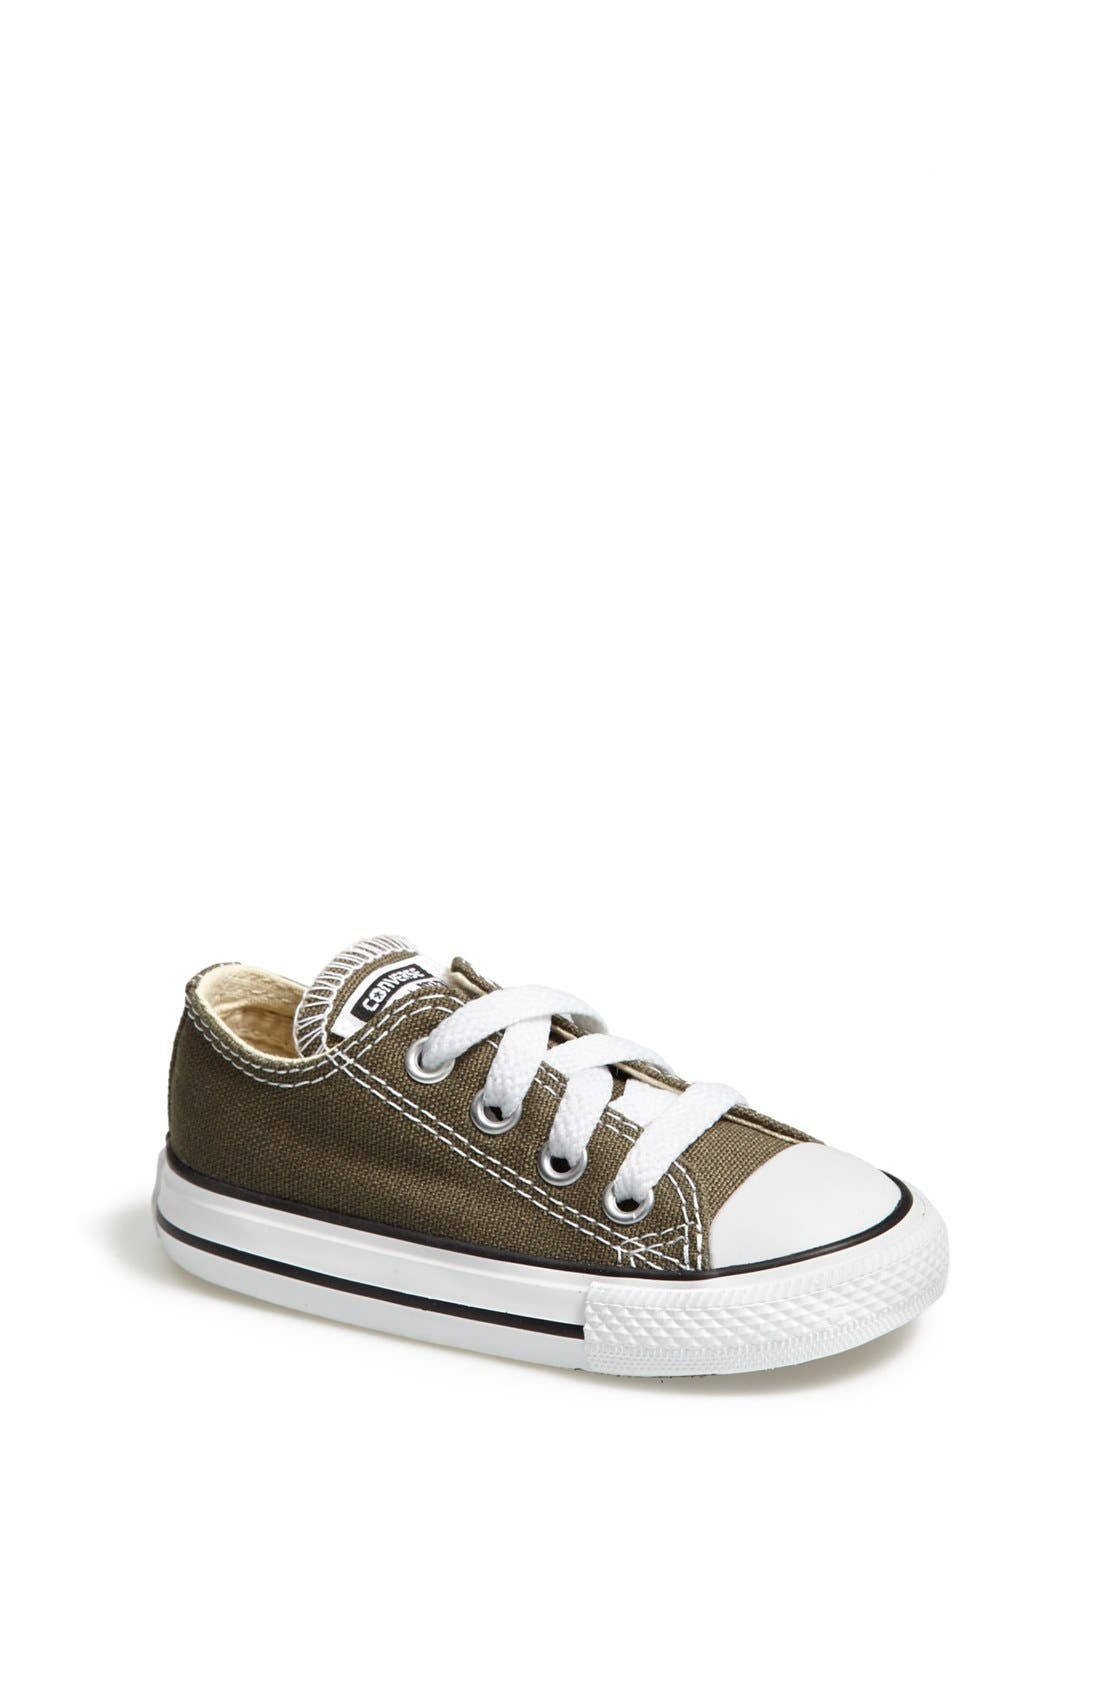 Alternate Image 1 Selected - Converse Chuck Taylor® All Star® Sneaker (Baby, Walker & Toddler)